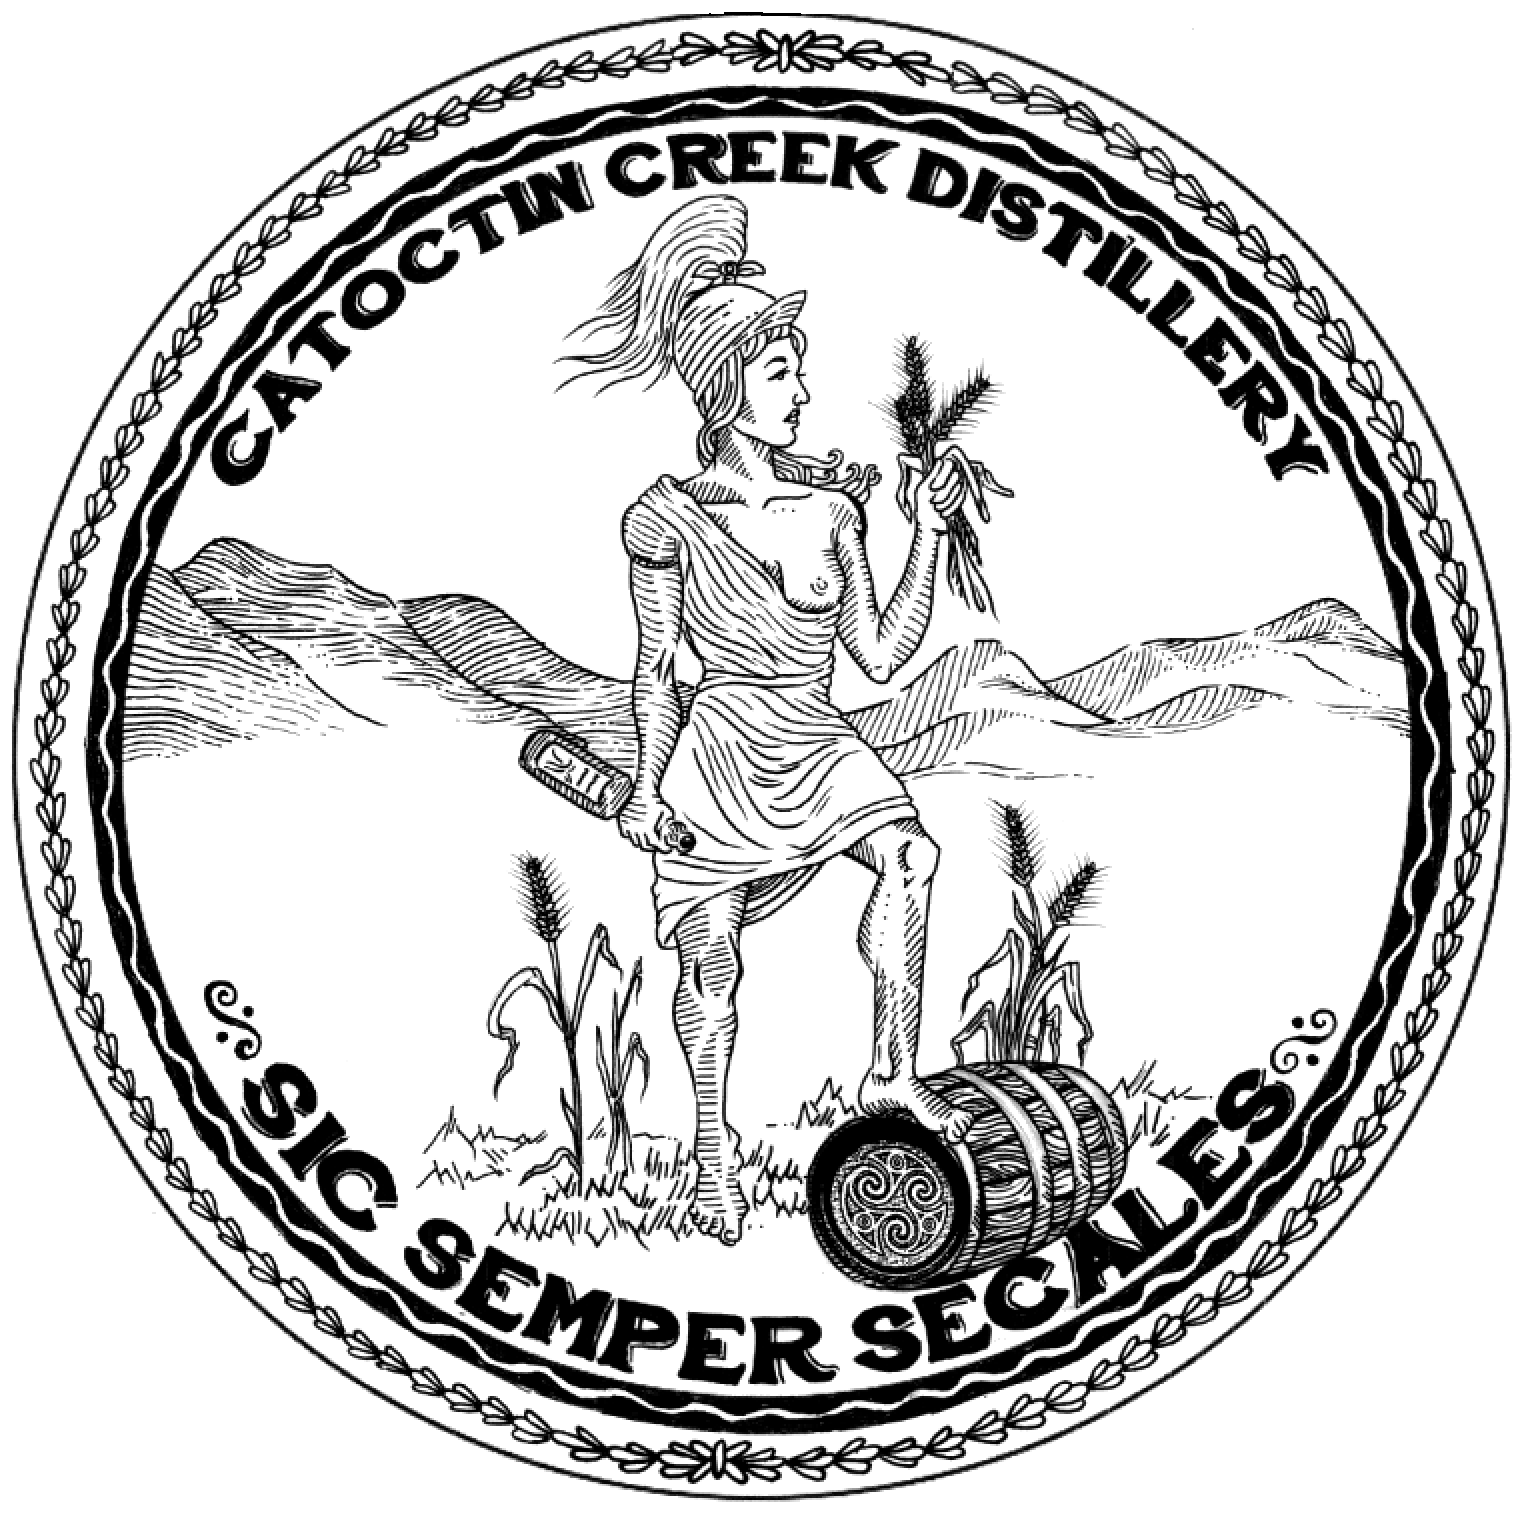 Great Seal of Catoctin Creek - SIC SEMPER SECALES